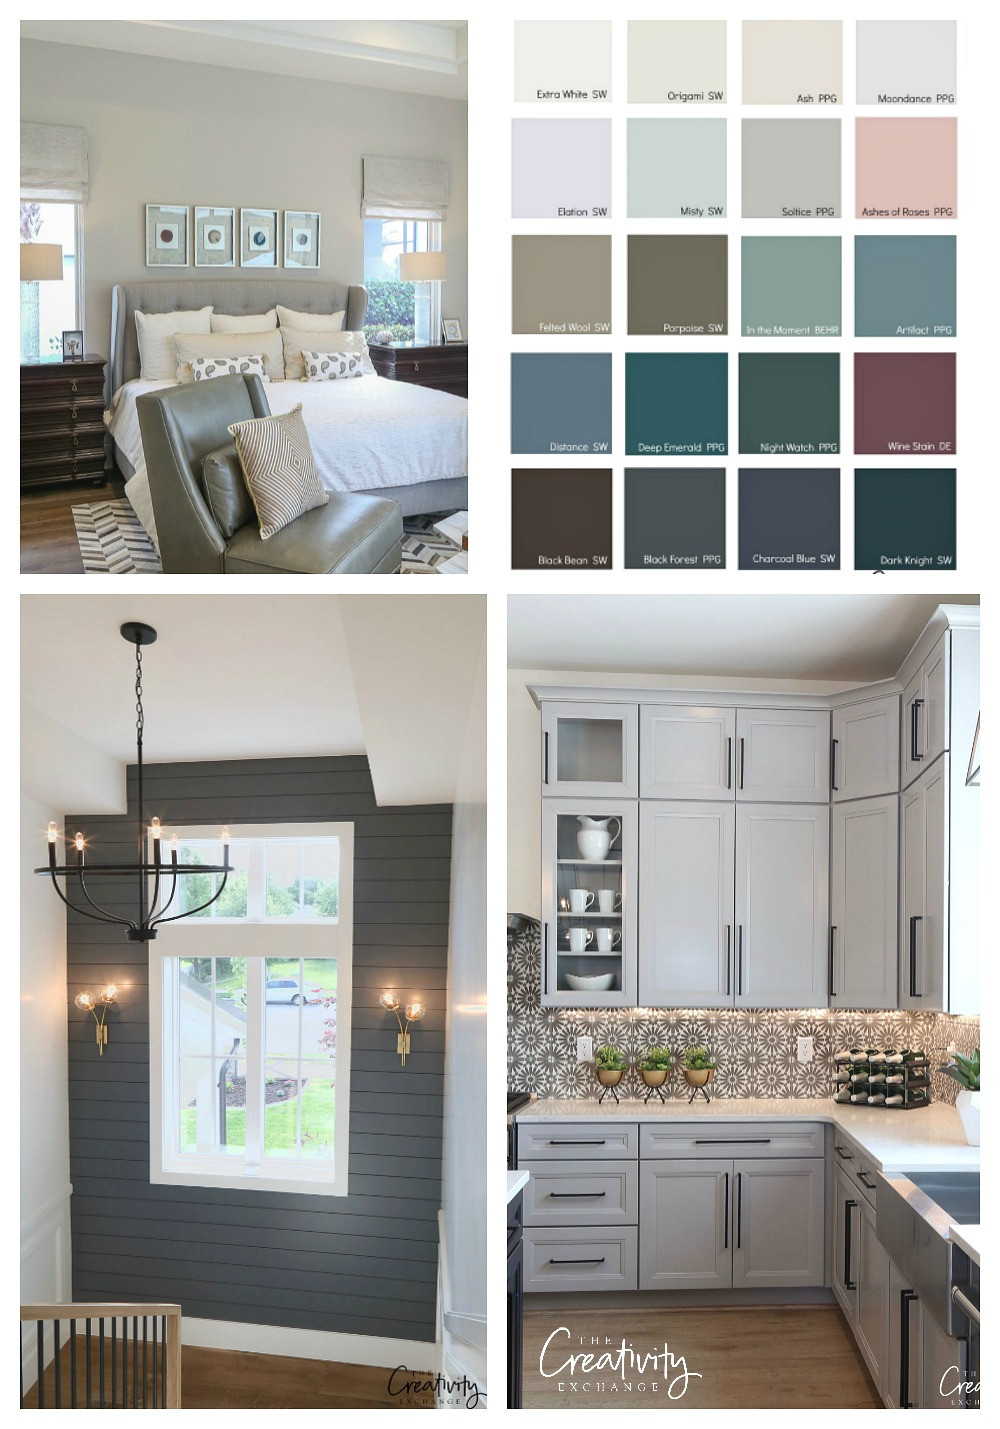 Best ideas about 2019 Paint Colors . Save or Pin 2019 Paint Color Trends and Forecasts Now.